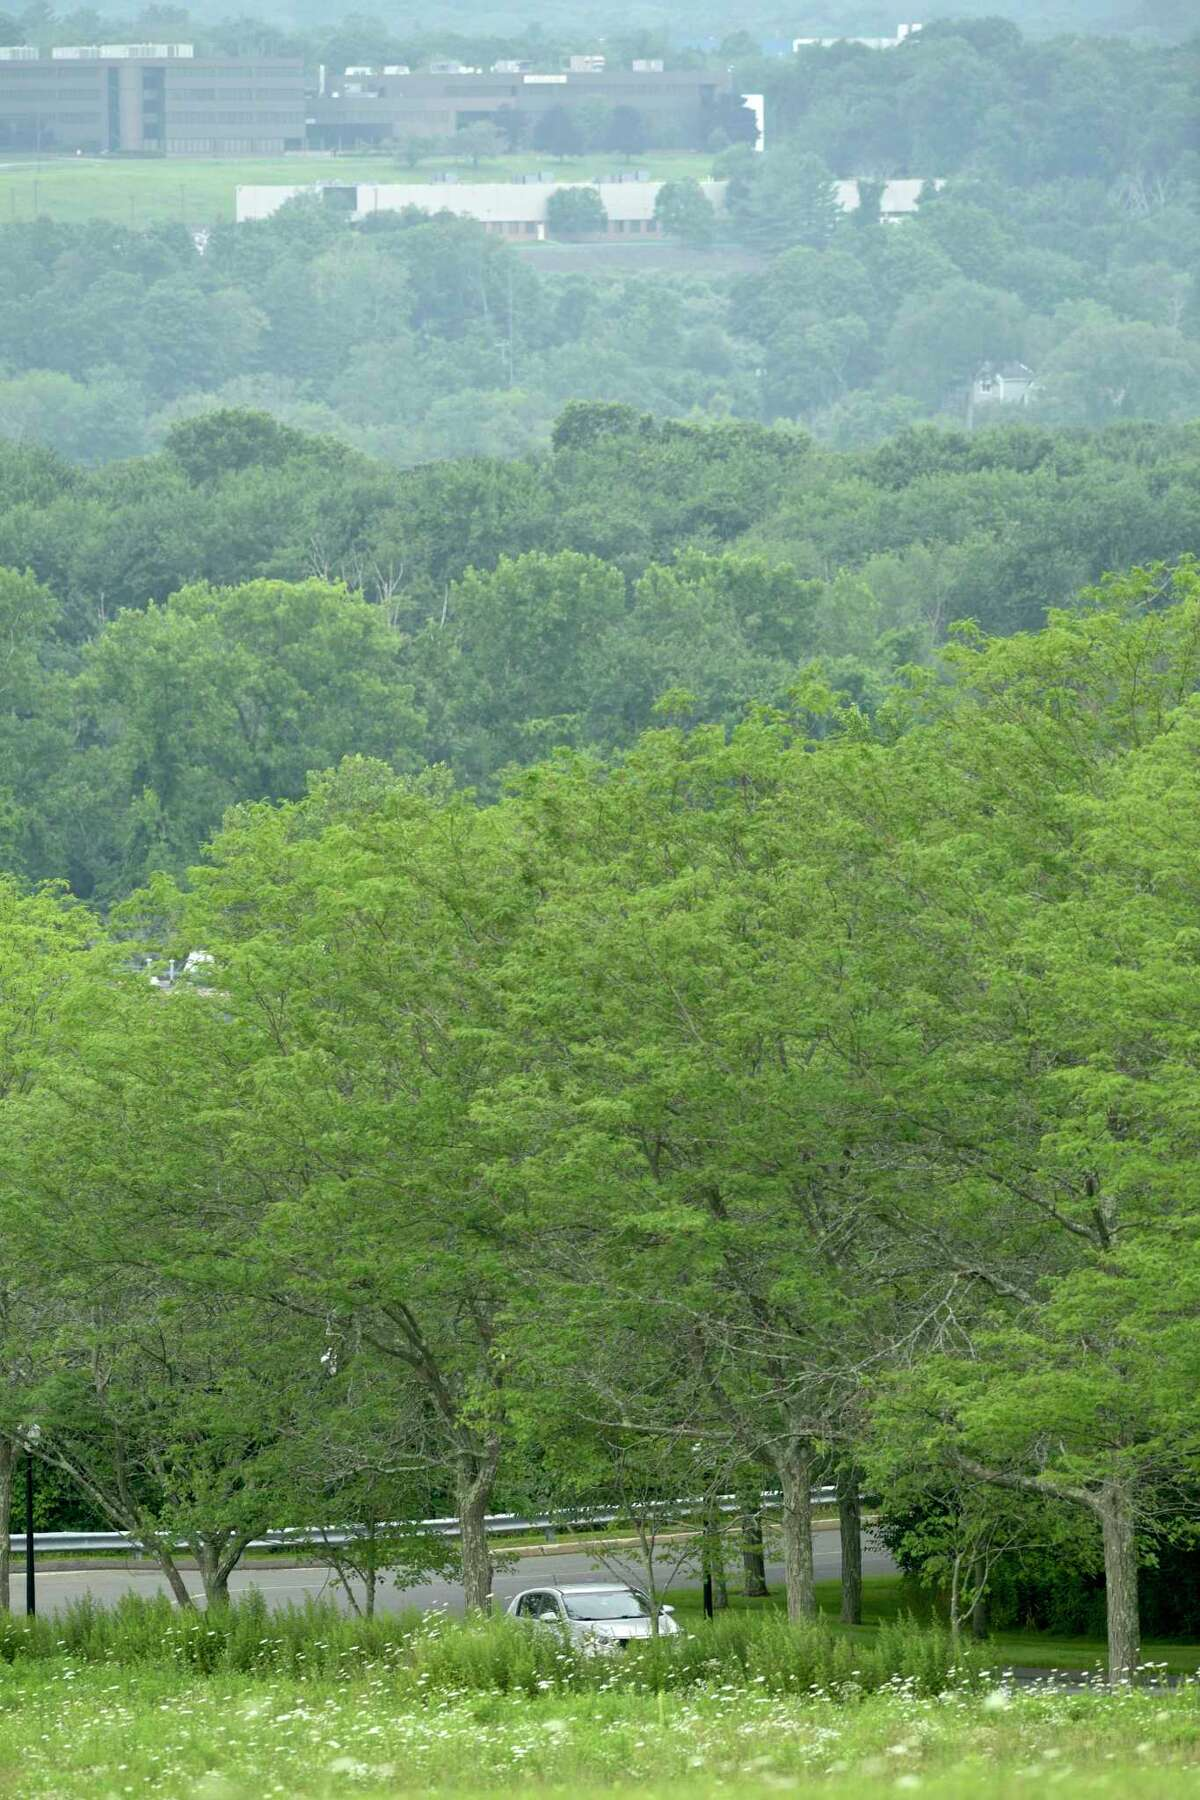 Looking through the haze to the Ethan Allen Corporate Headquarters from Lee Farm Corporate Park Wednesday in Danbury.